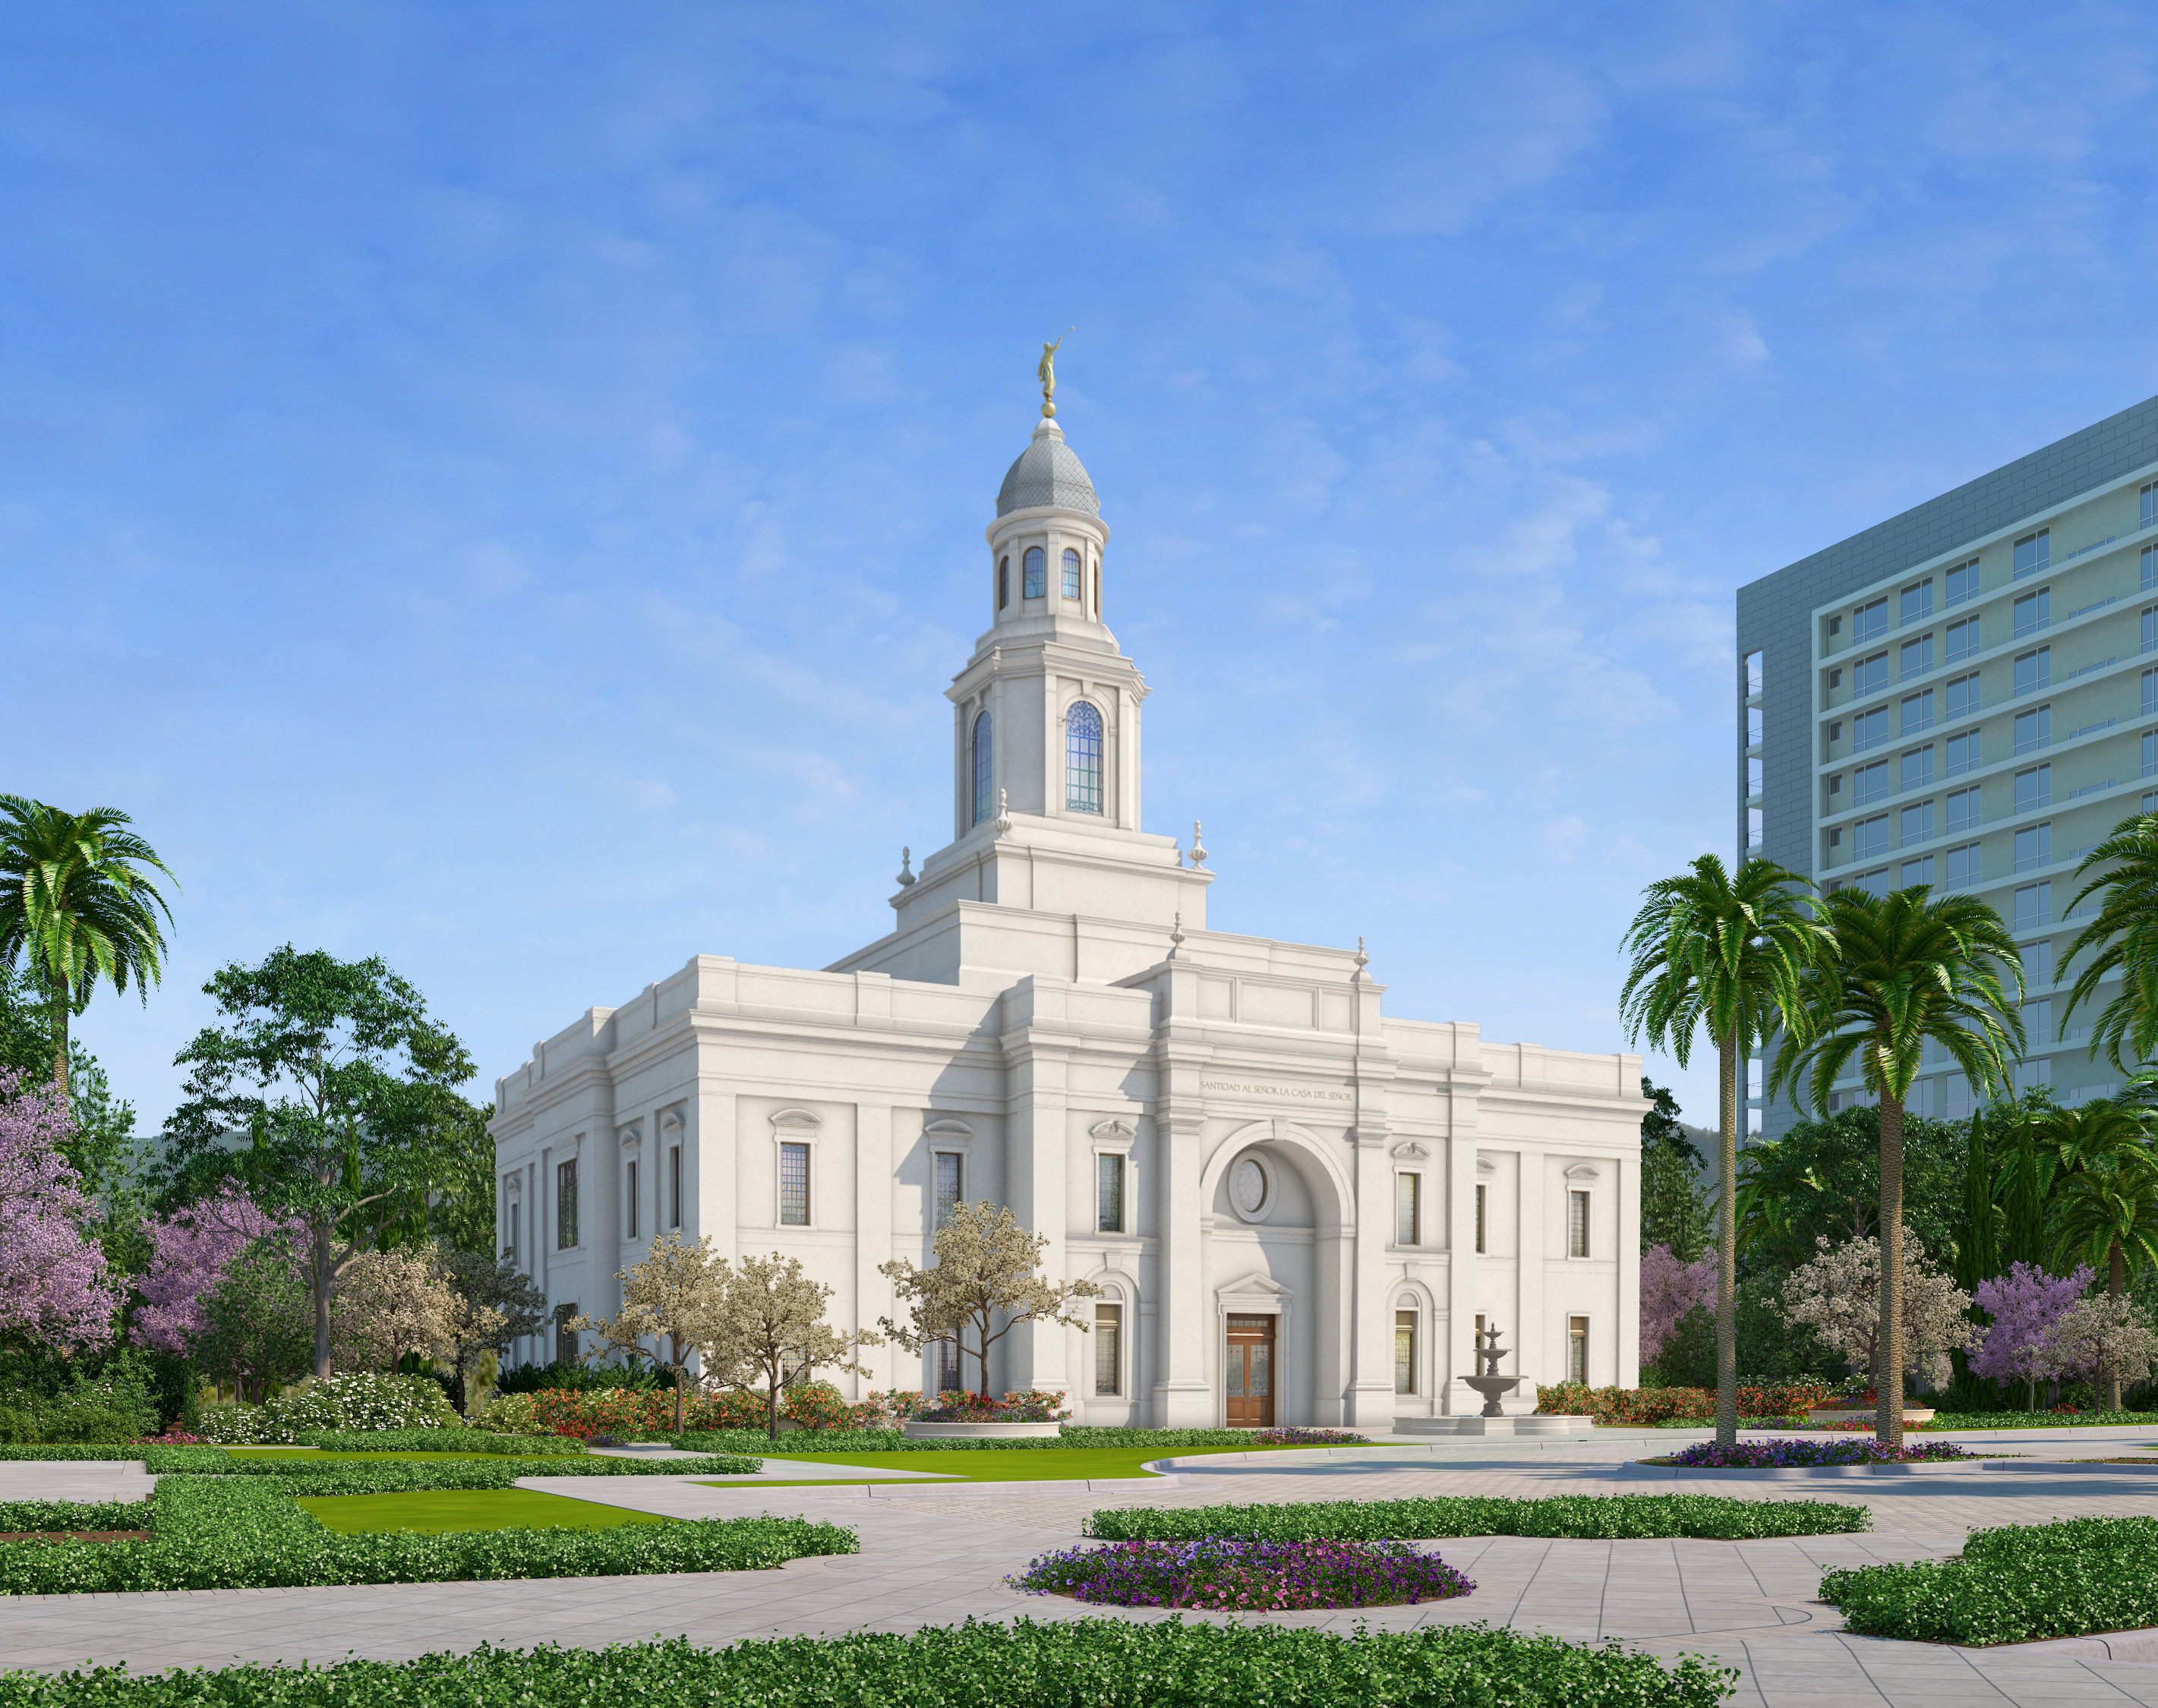 Rendering of the Concepción Chile Temple, which will be dedicated on Oct. 28, 2018, by President Russell M. Nelson.